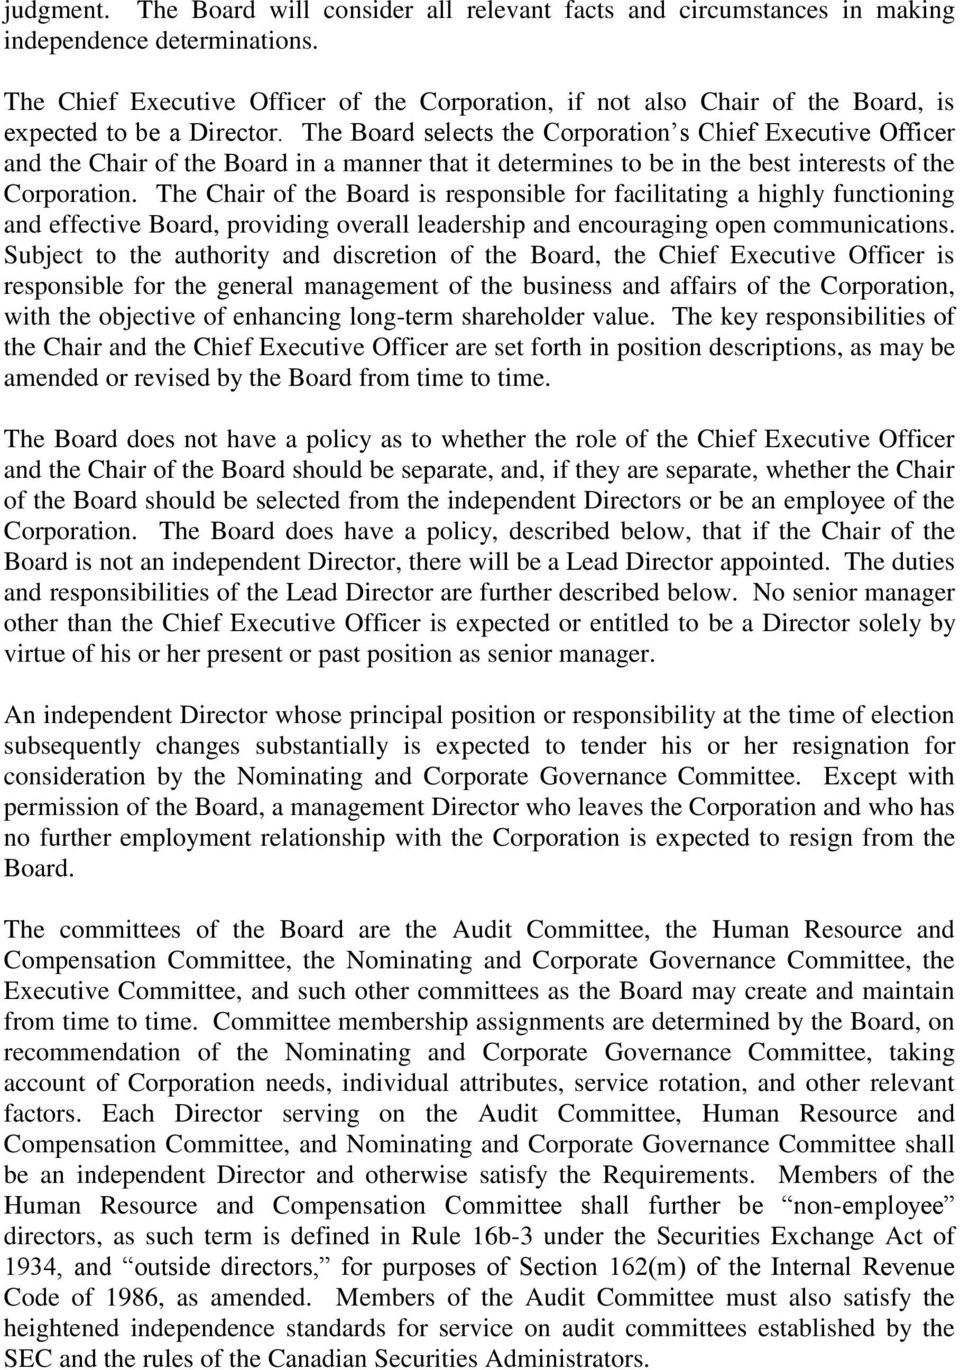 The Board selects the Corporation s Chief Executive Officer and the Chair of the Board in a manner that it determines to be in the best interests of the Corporation.